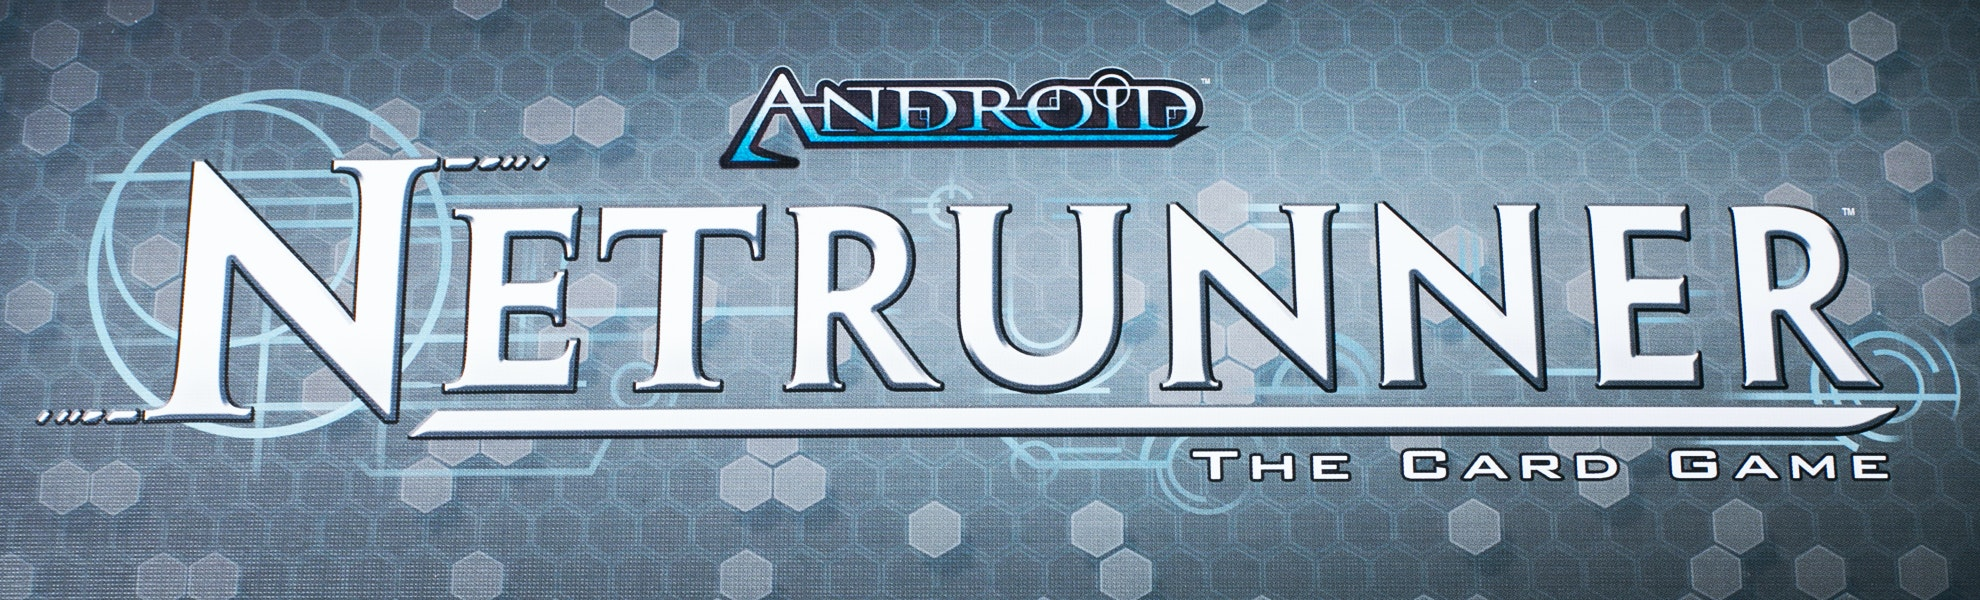 Android Netrunner Expansion 3-Pack